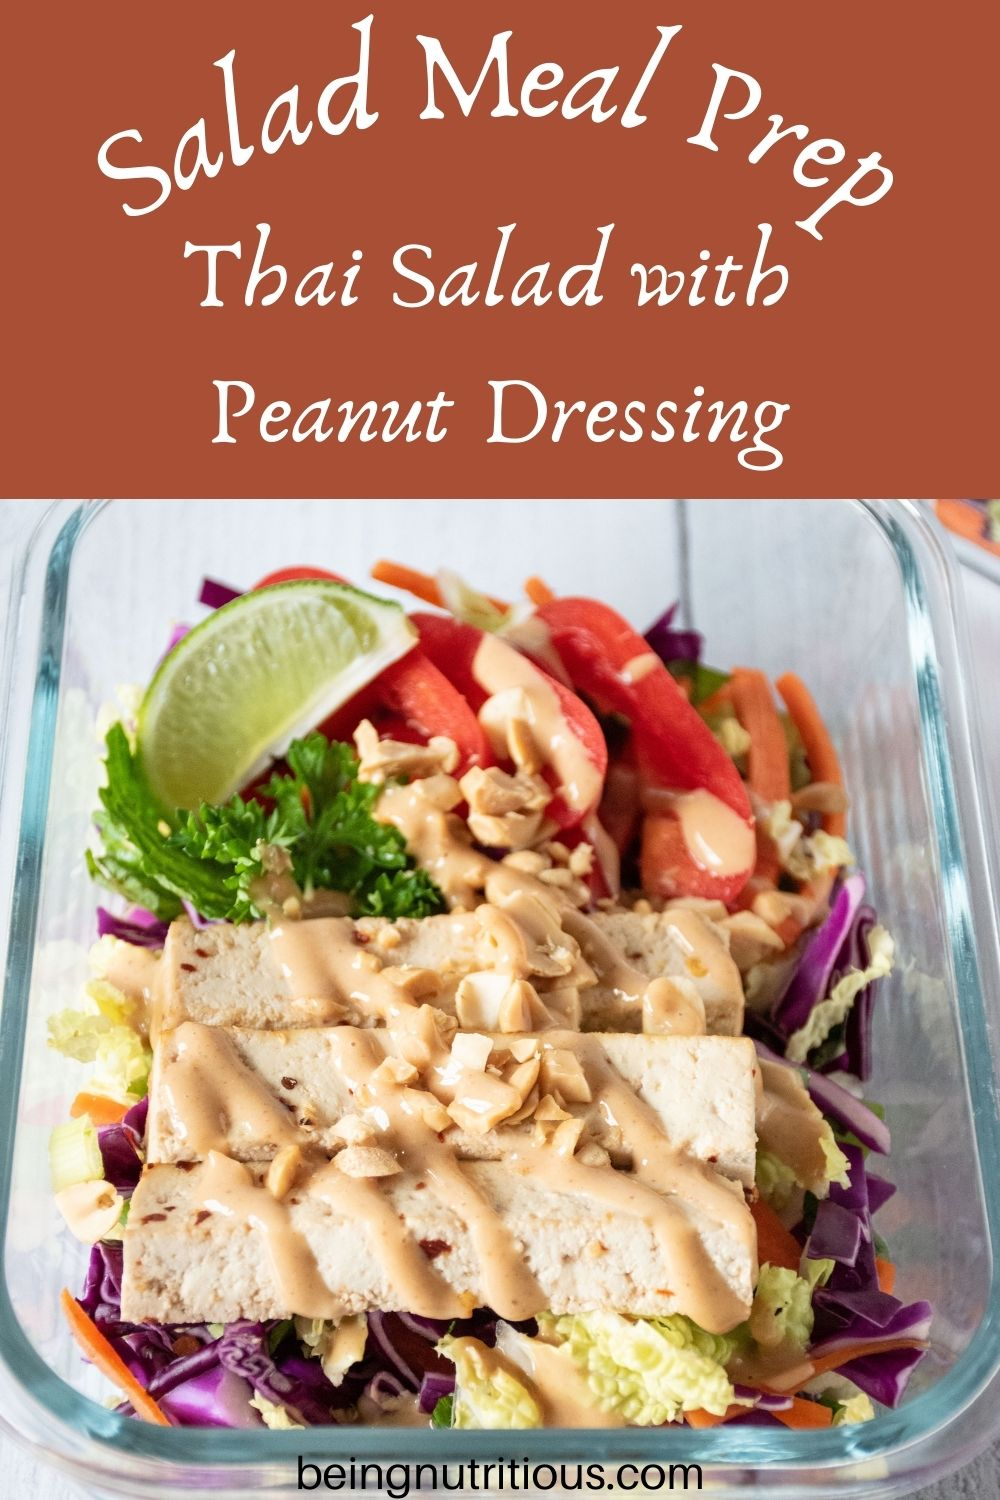 Thai salad in glass meal prep container. Text overlay: Salad Meal Prep; Thai Salad with Peanut Dressing.